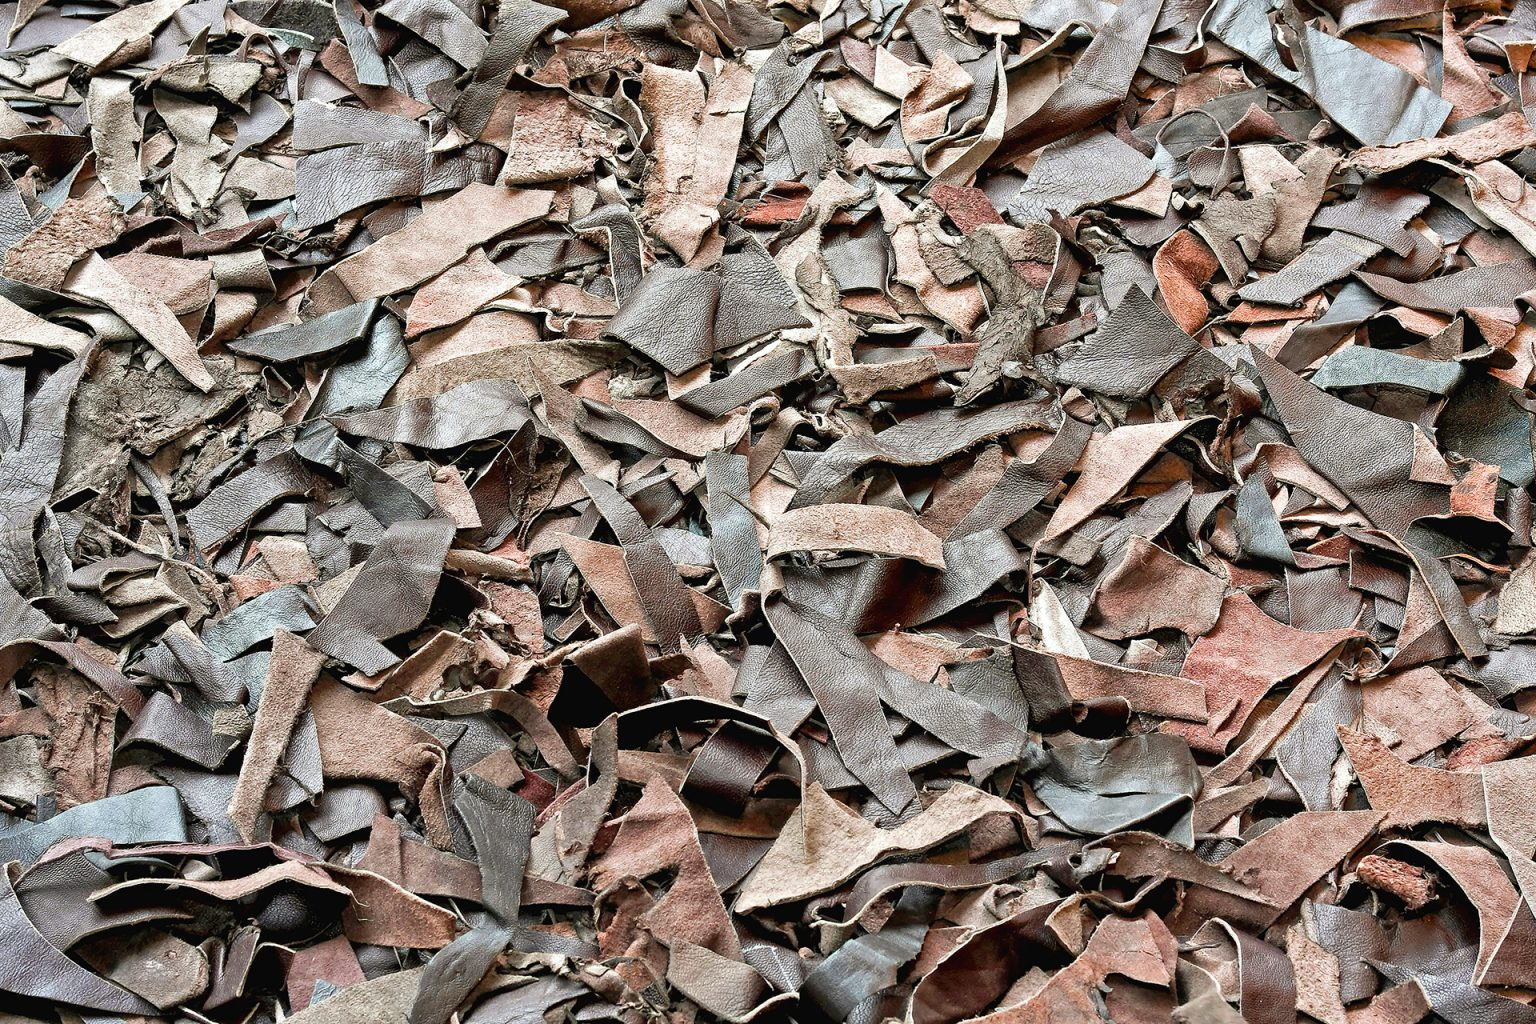 Bio-recycled - Remains of leather production.